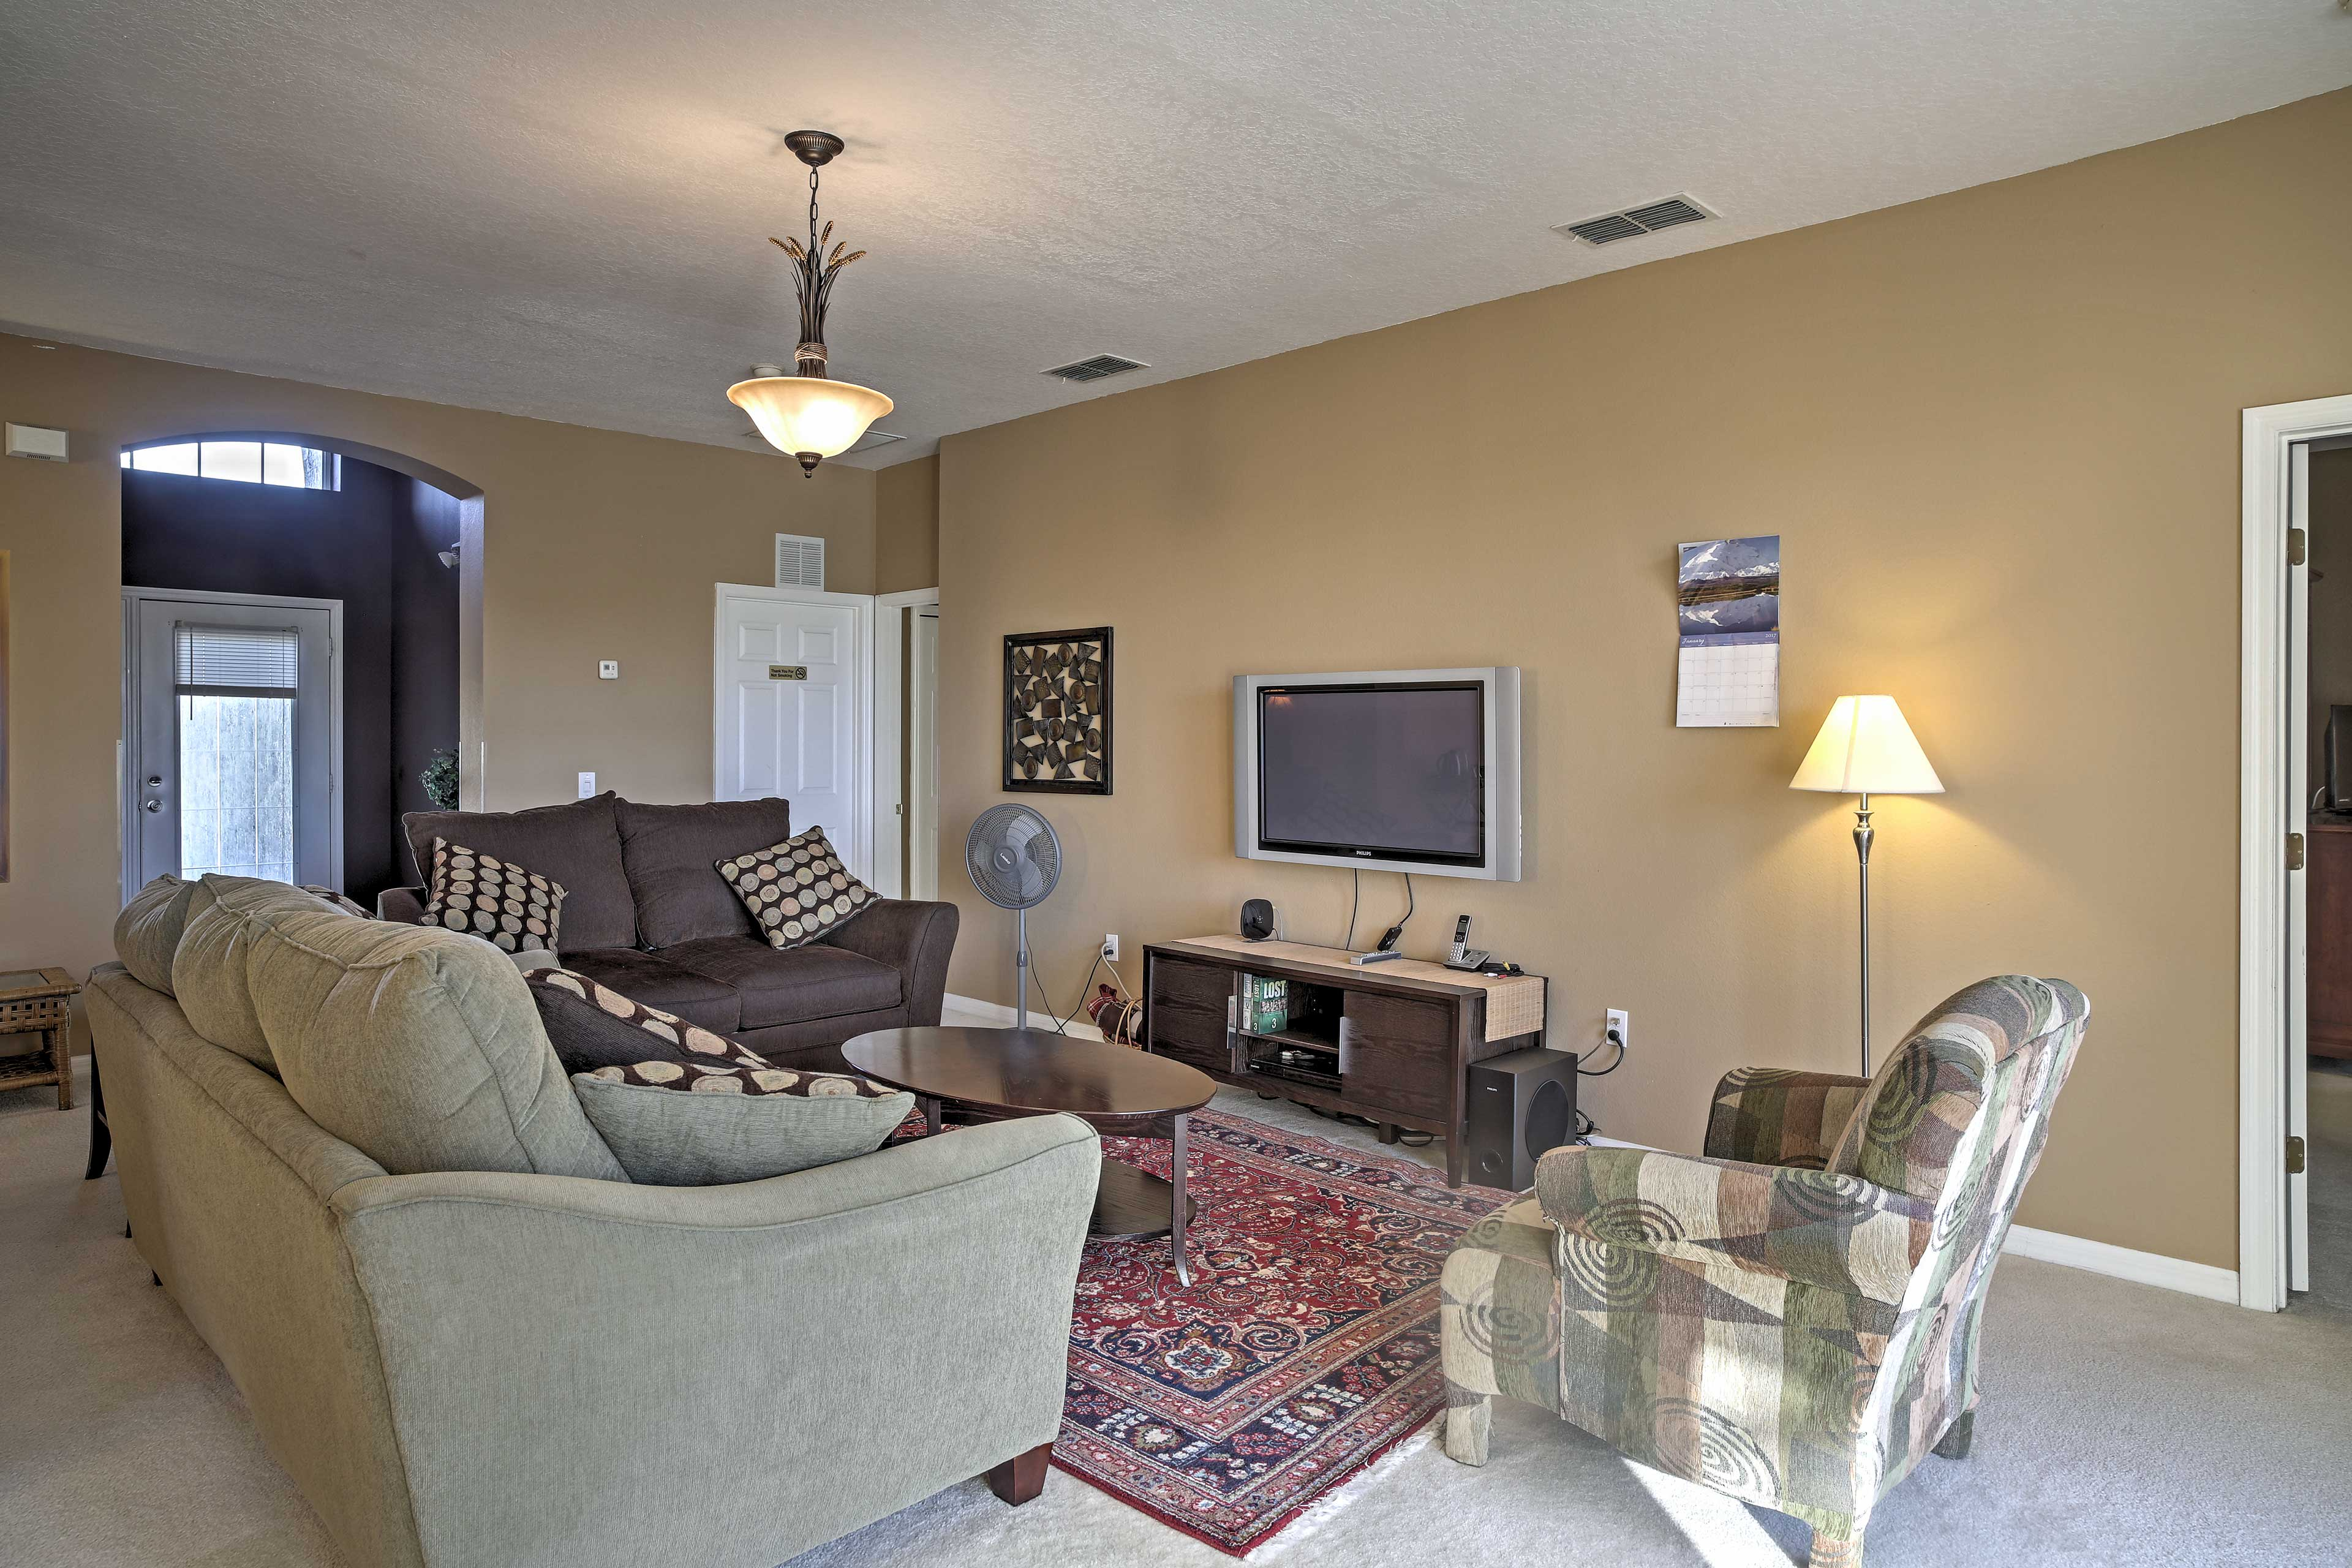 Curl up on the couch and watch the news on the 48-inch flat screen TV.